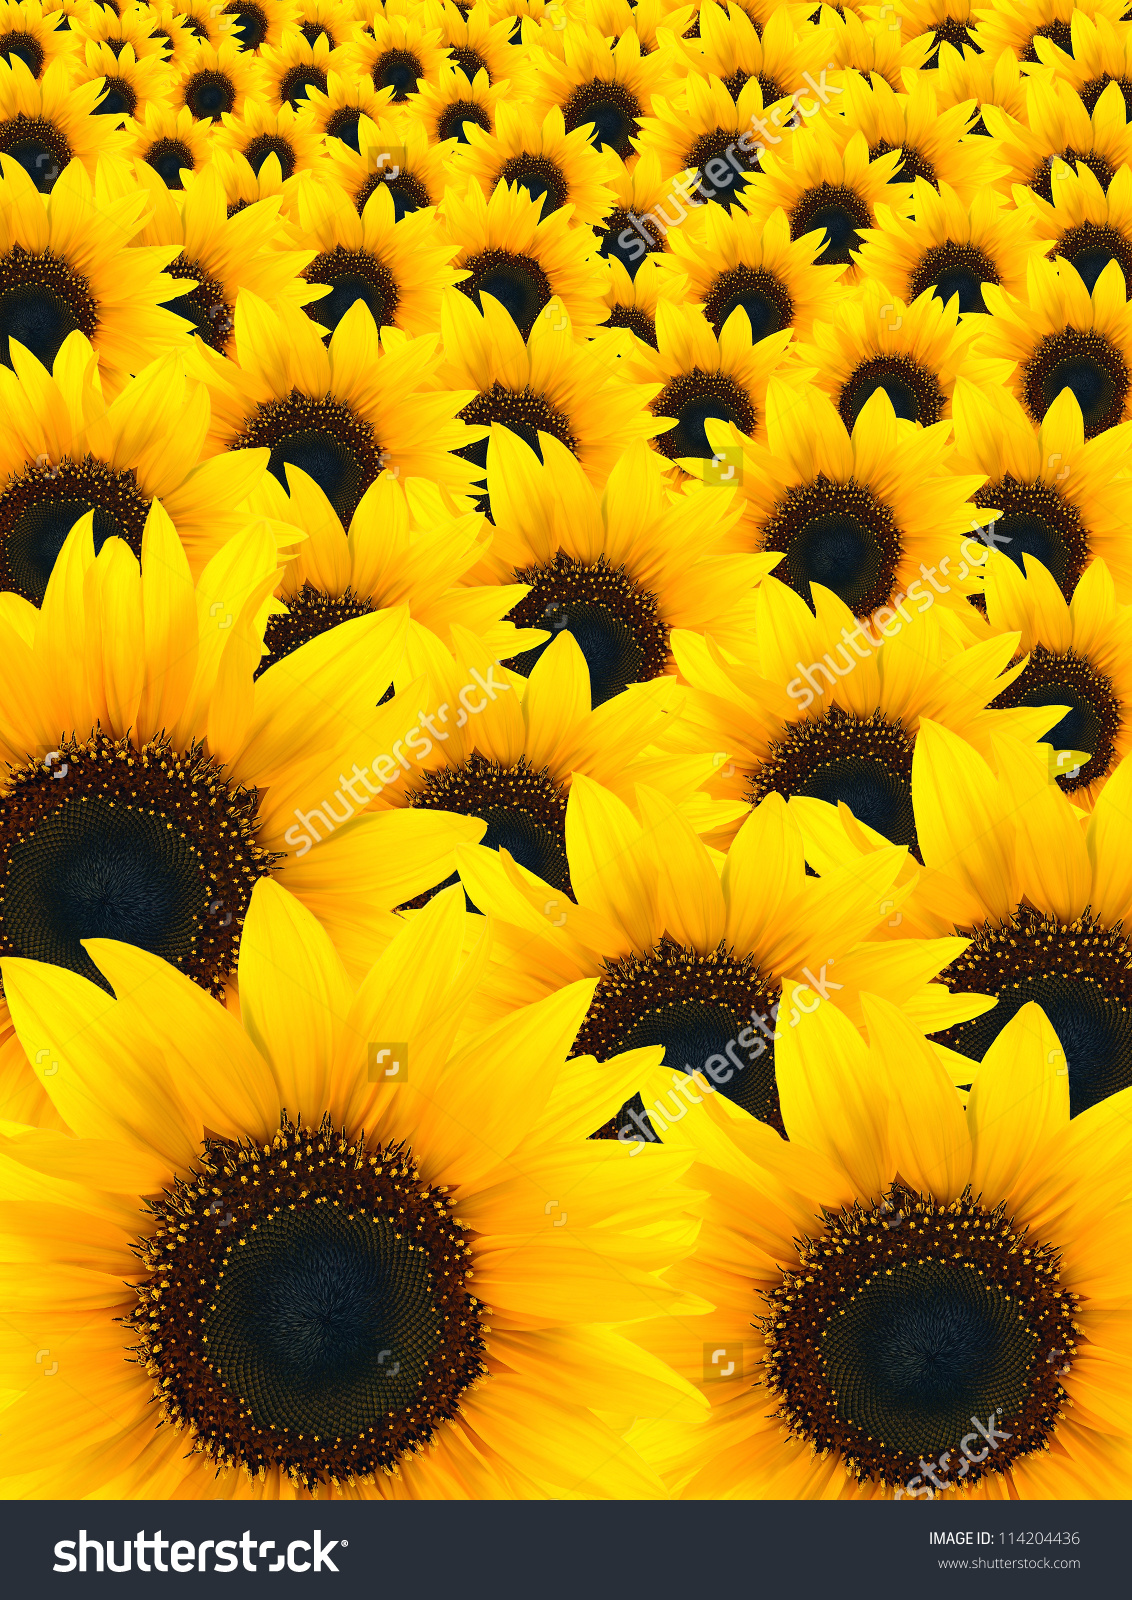 Beautiful Sunflower Background Stock Photo 114204436 - Shutterstock